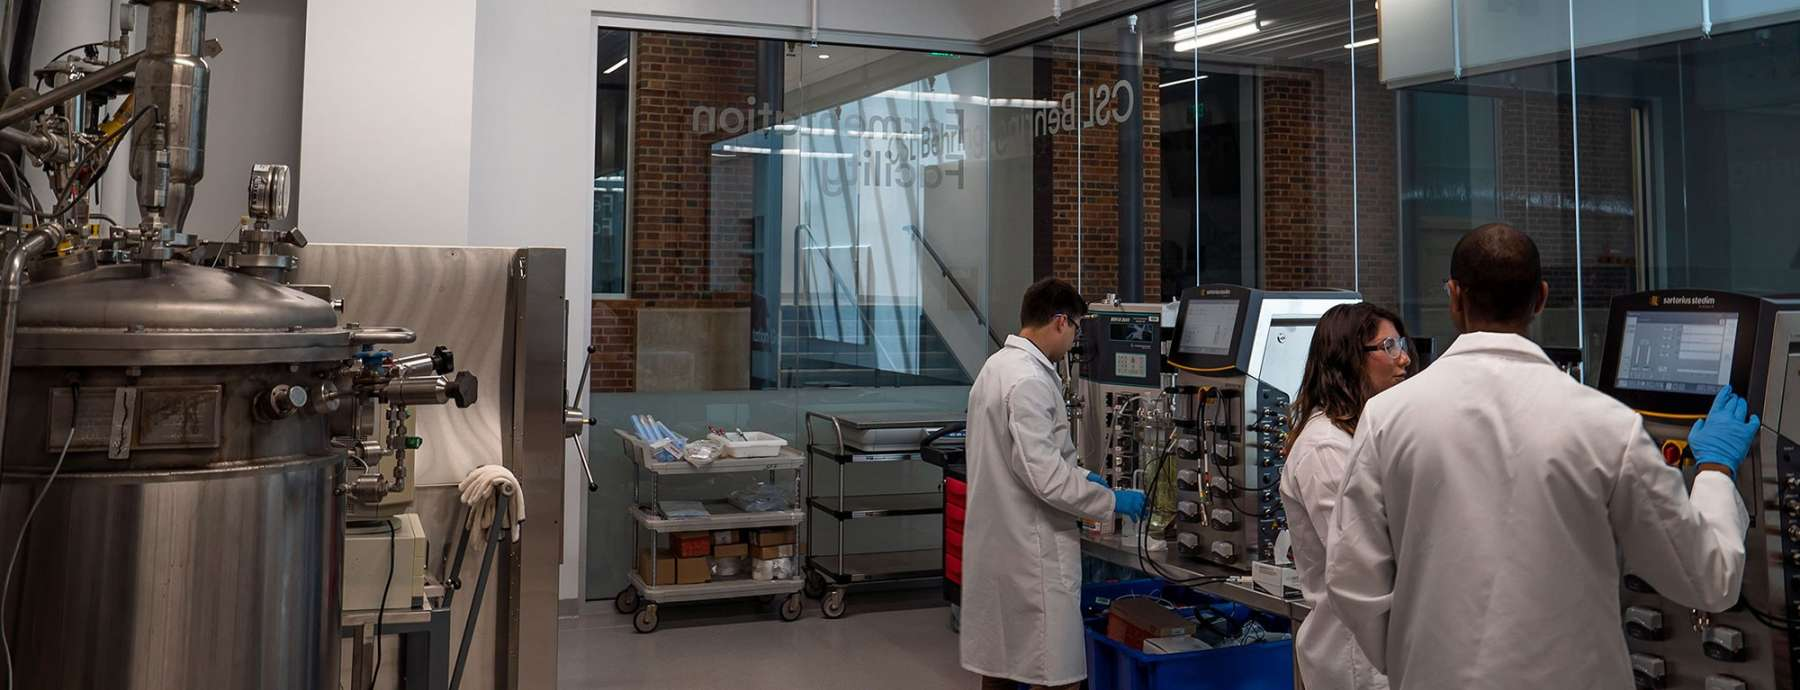 CSL Behring Fermentation Facility | The Huck Institutes